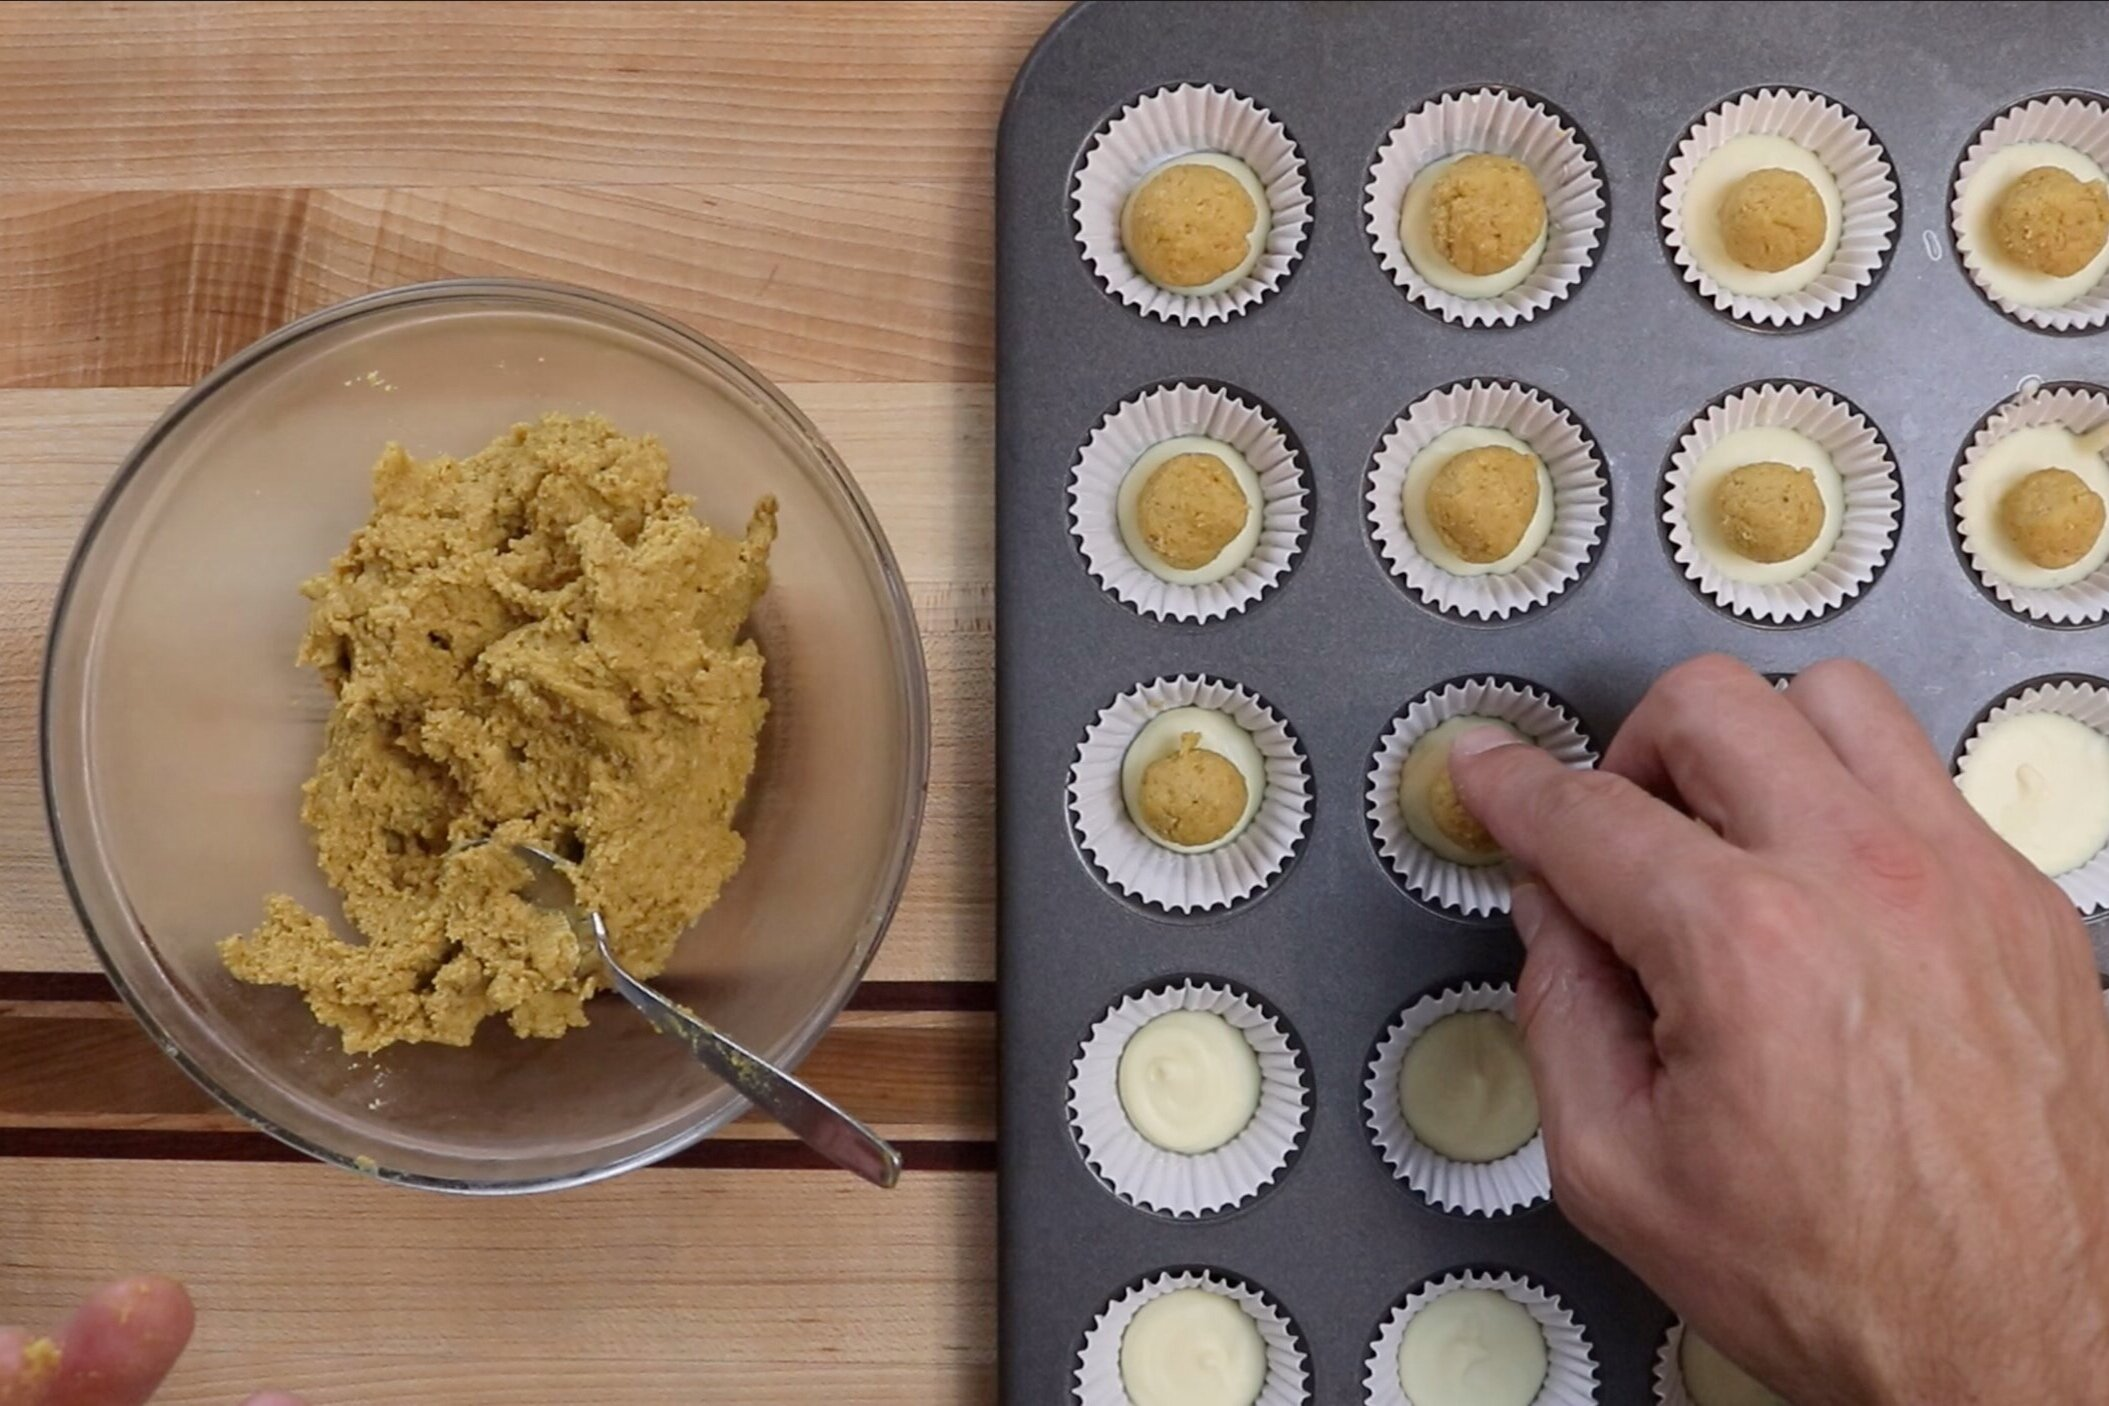 9. Roll a teaspoon of the pumpkin mixture between your hands making small balls.  Place the pumpkin balls in the middle of each cup on top of the hardened white chocolate. -